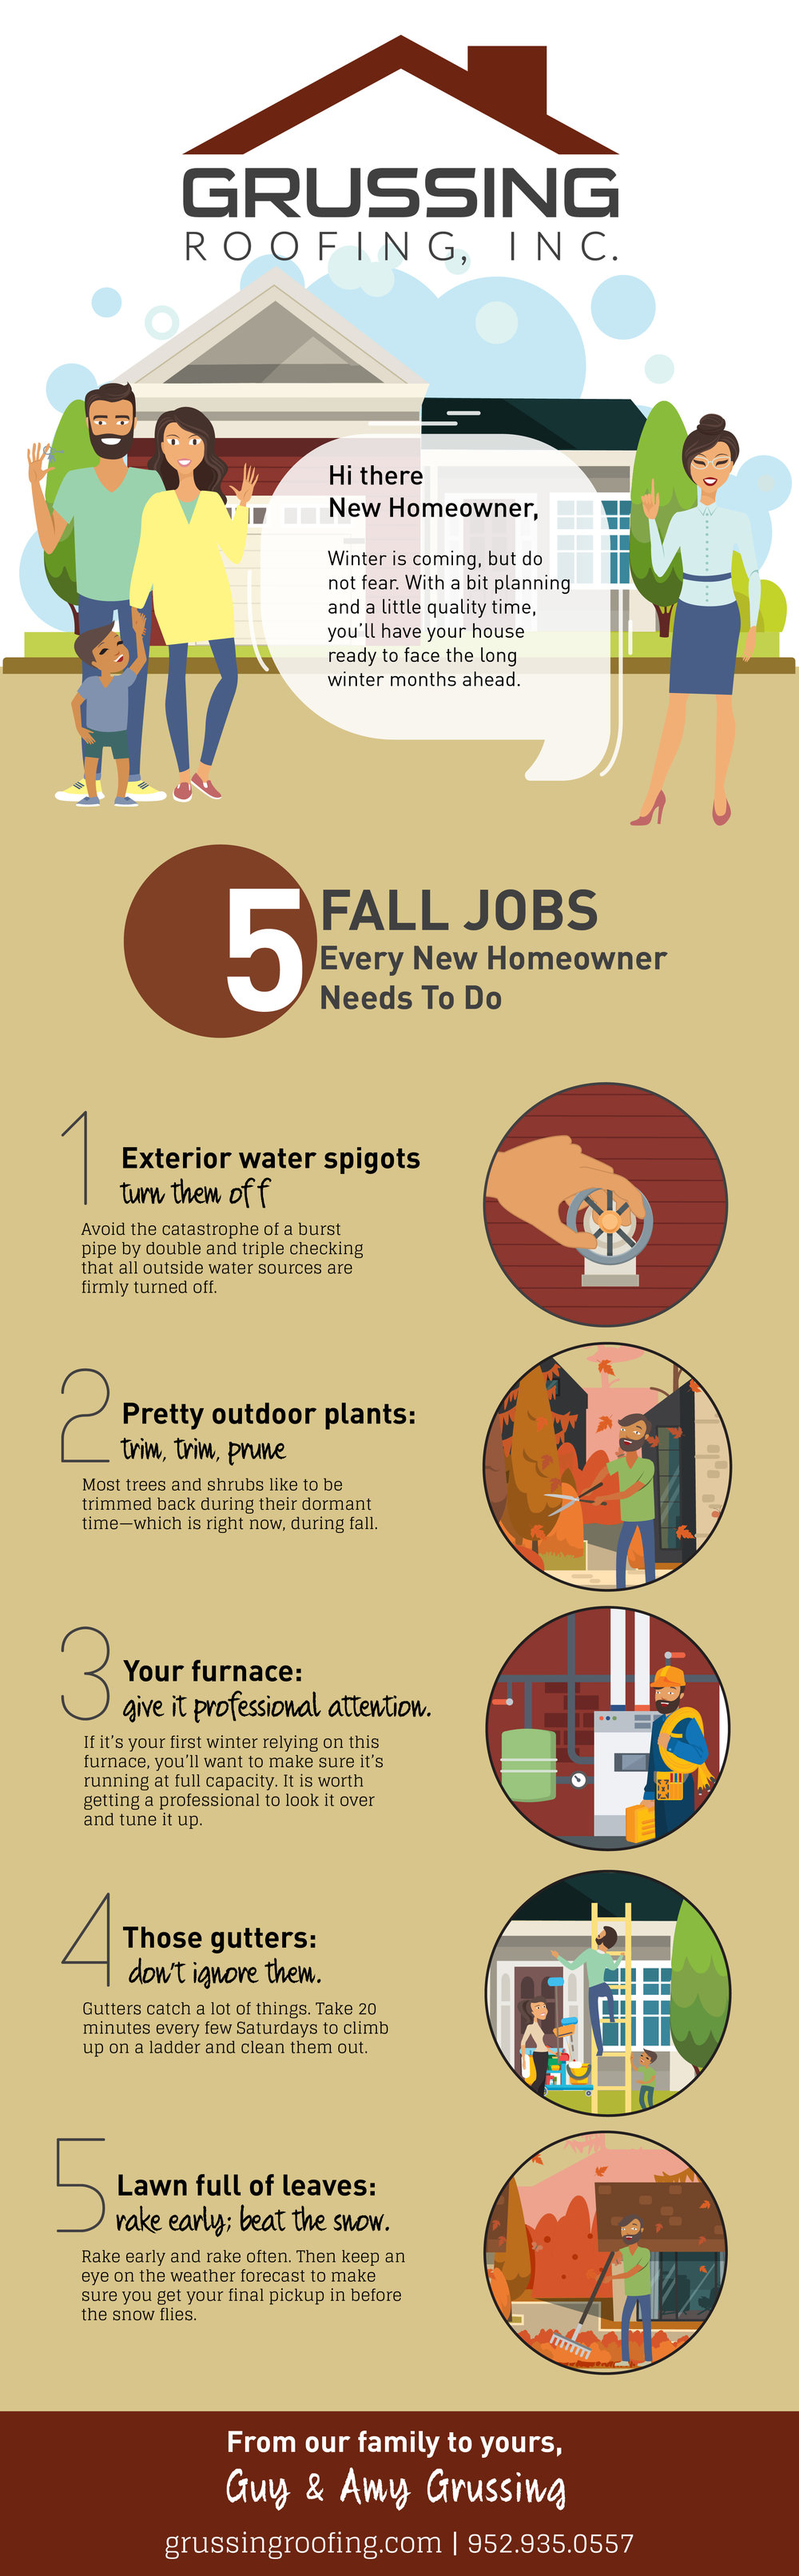 5-Fall-Jobs-New-Homeowners-Infographic.jpg